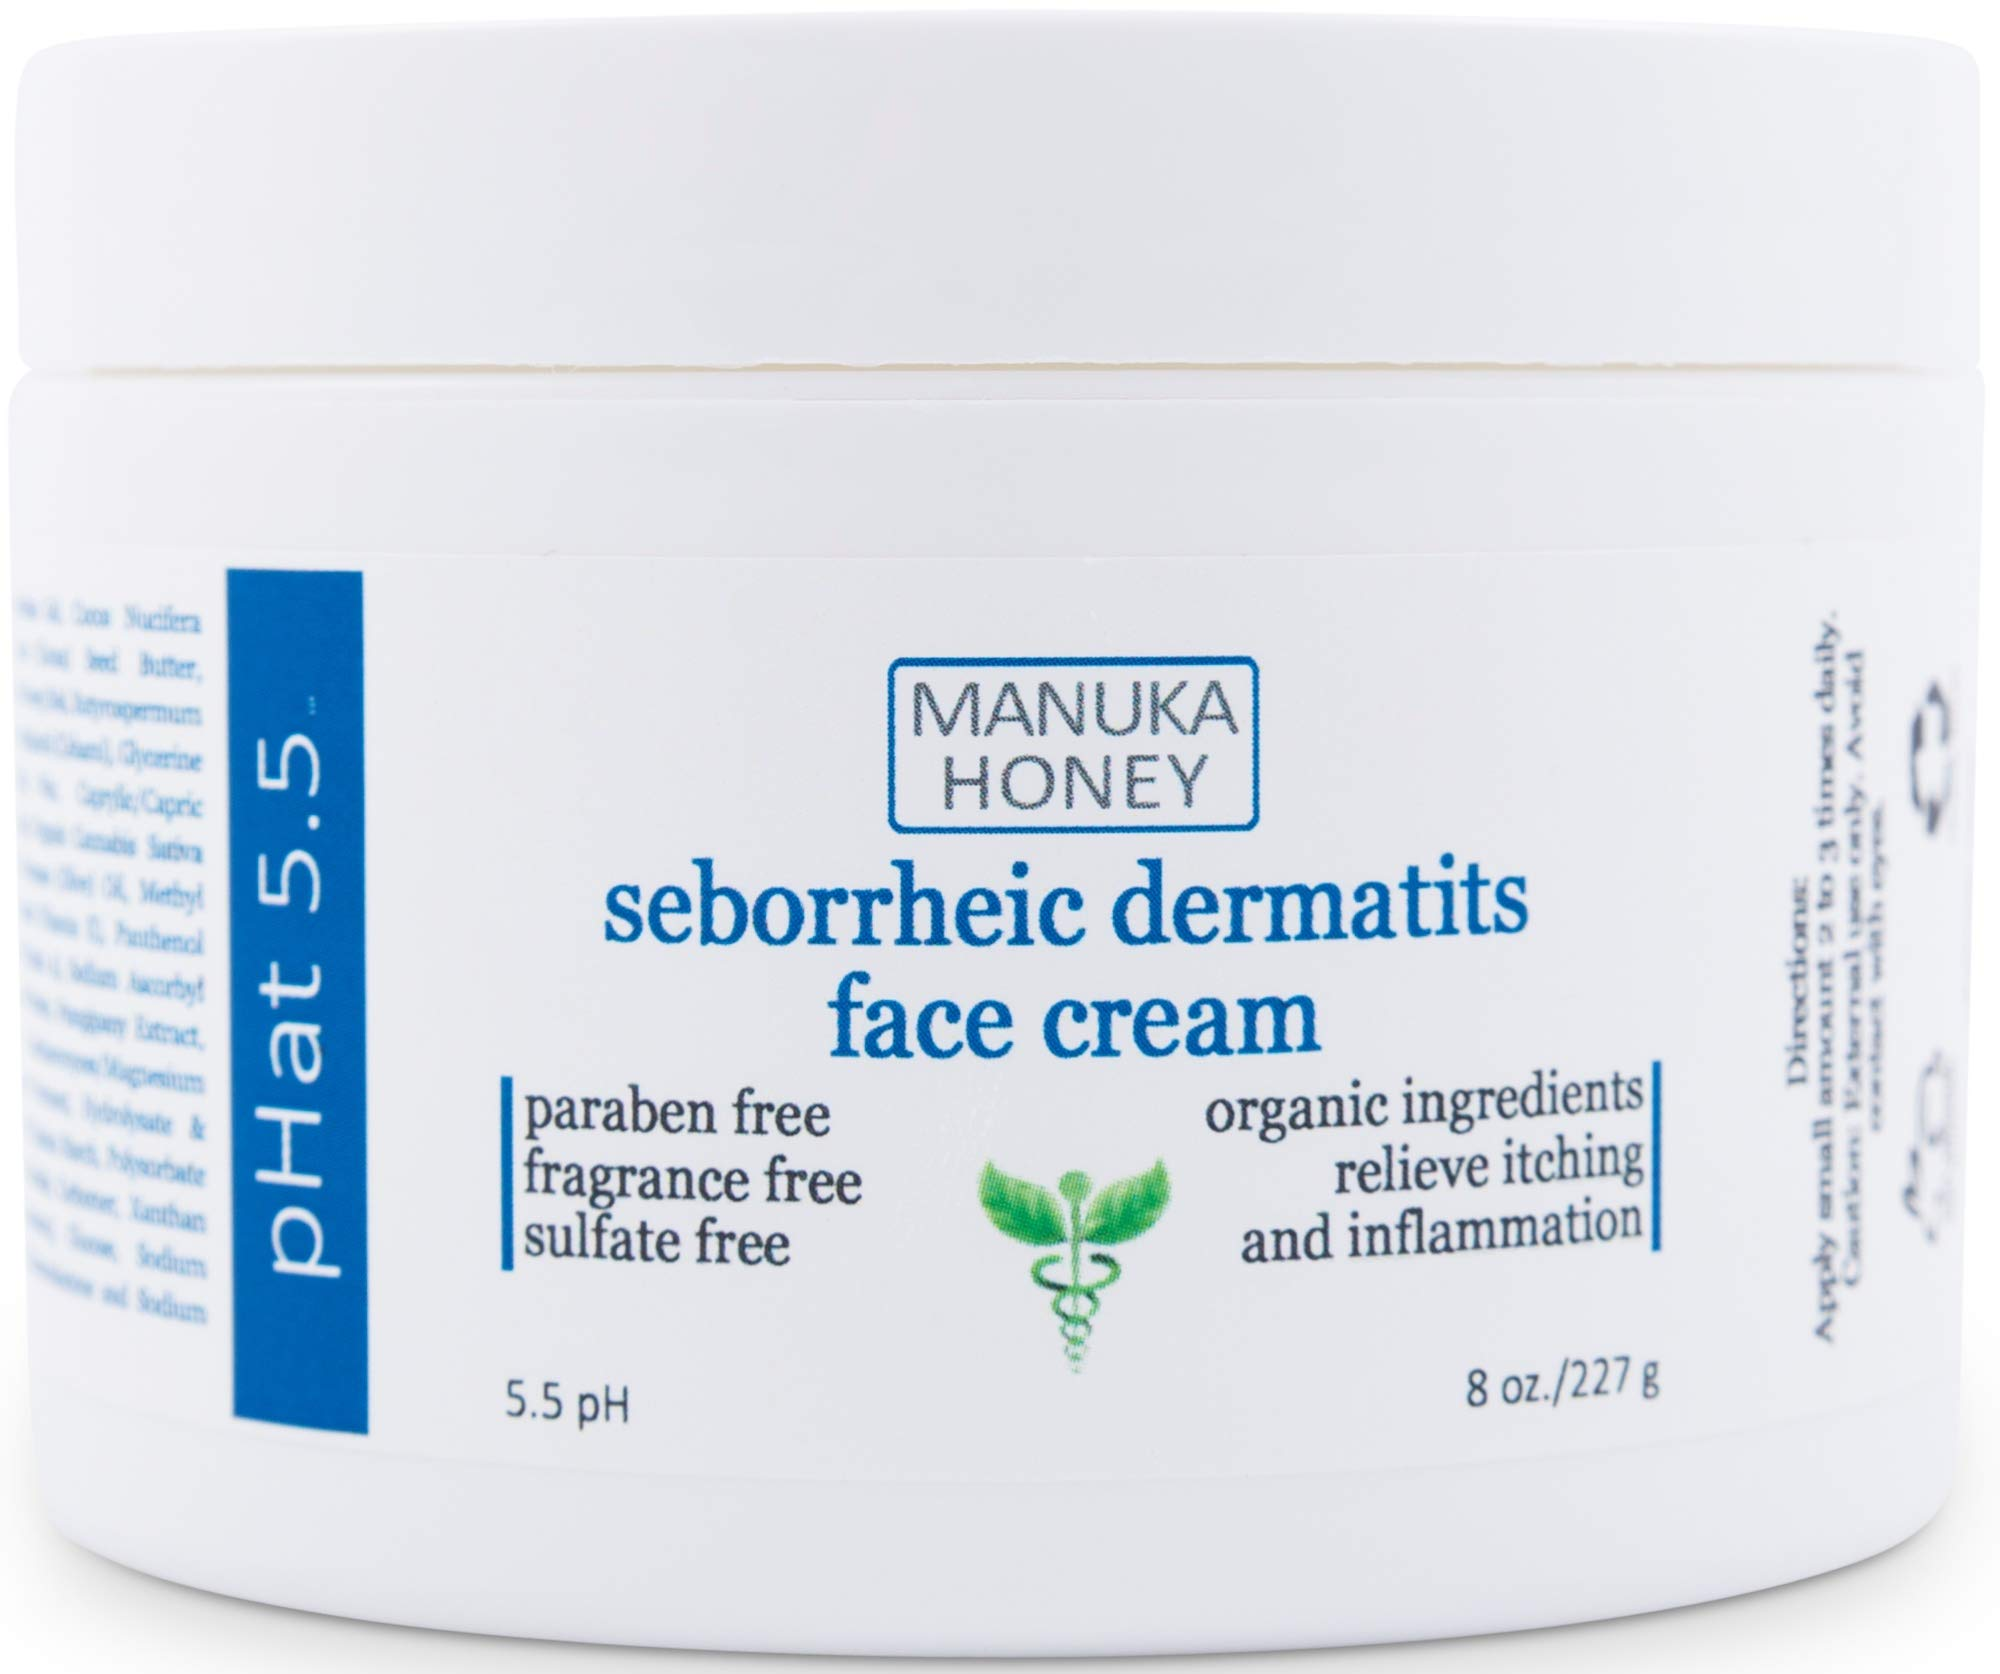 Seborrheic Dermatitis Cream with Manuka Honey, Coconut Oil and Aloe Vera - Moisturizing Face and Body Anti Itch Cream and Skin Treatment for Sensitive Skin - Natural & Organic Cream (8 oz)